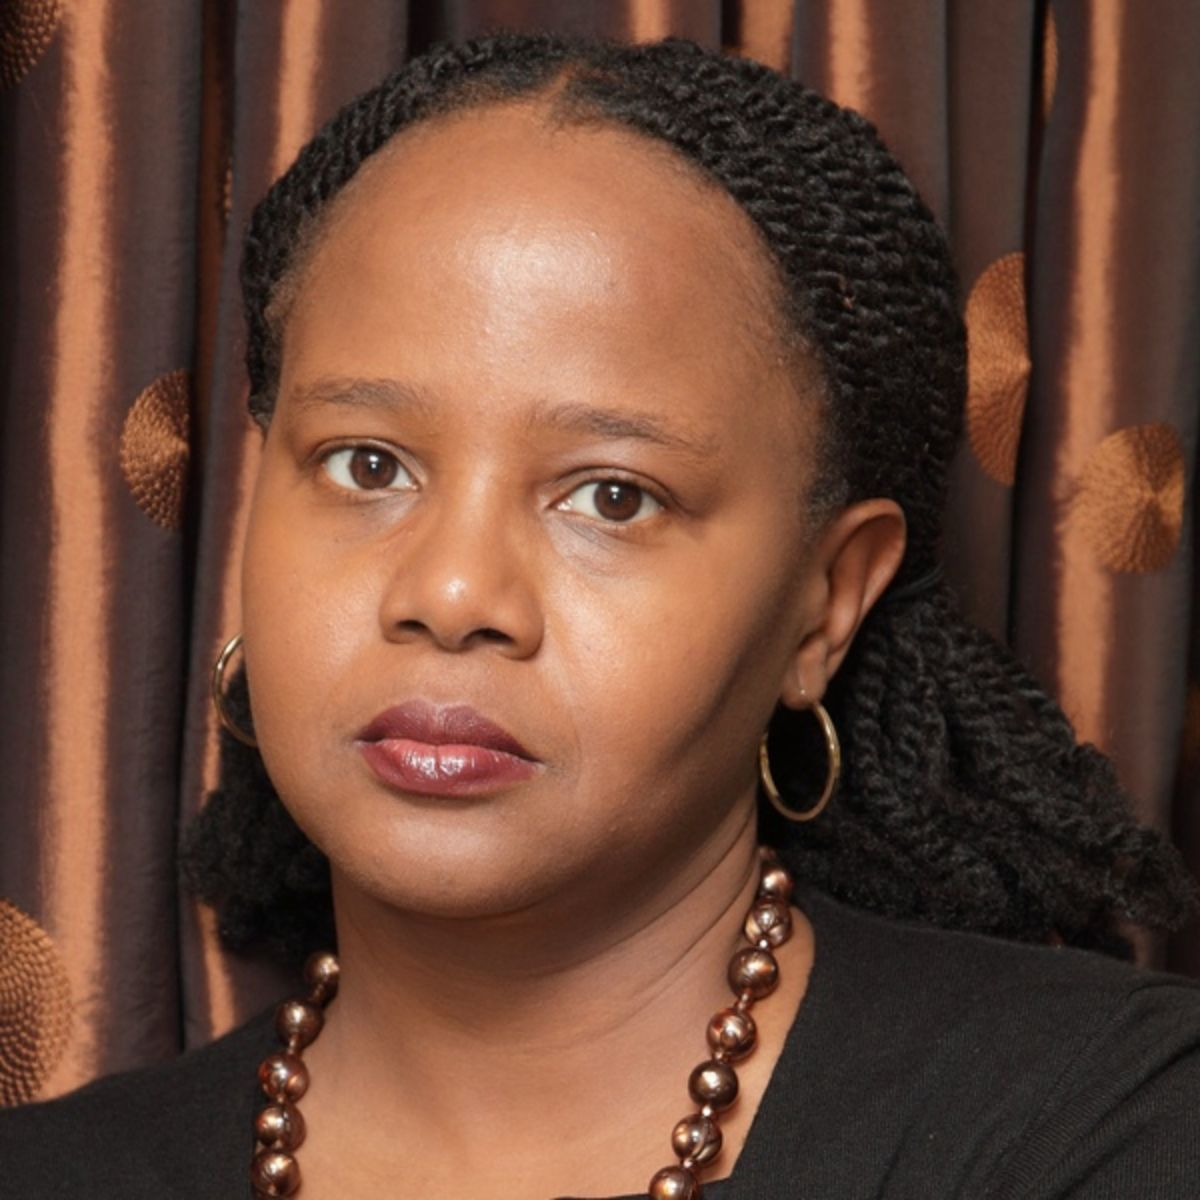 Pharmcas Essay Breath Eyes Memory By Edwige Danticat Essay Examples Essays And Criticism  On Edwidge Danticats Breath Eyes Memory  Critical Essays Imaginary Essays also Harvard Referencing Essay Find Out More About Acclaimed Haitian Writer Edwidge Danticatauthor  English Essay Structure